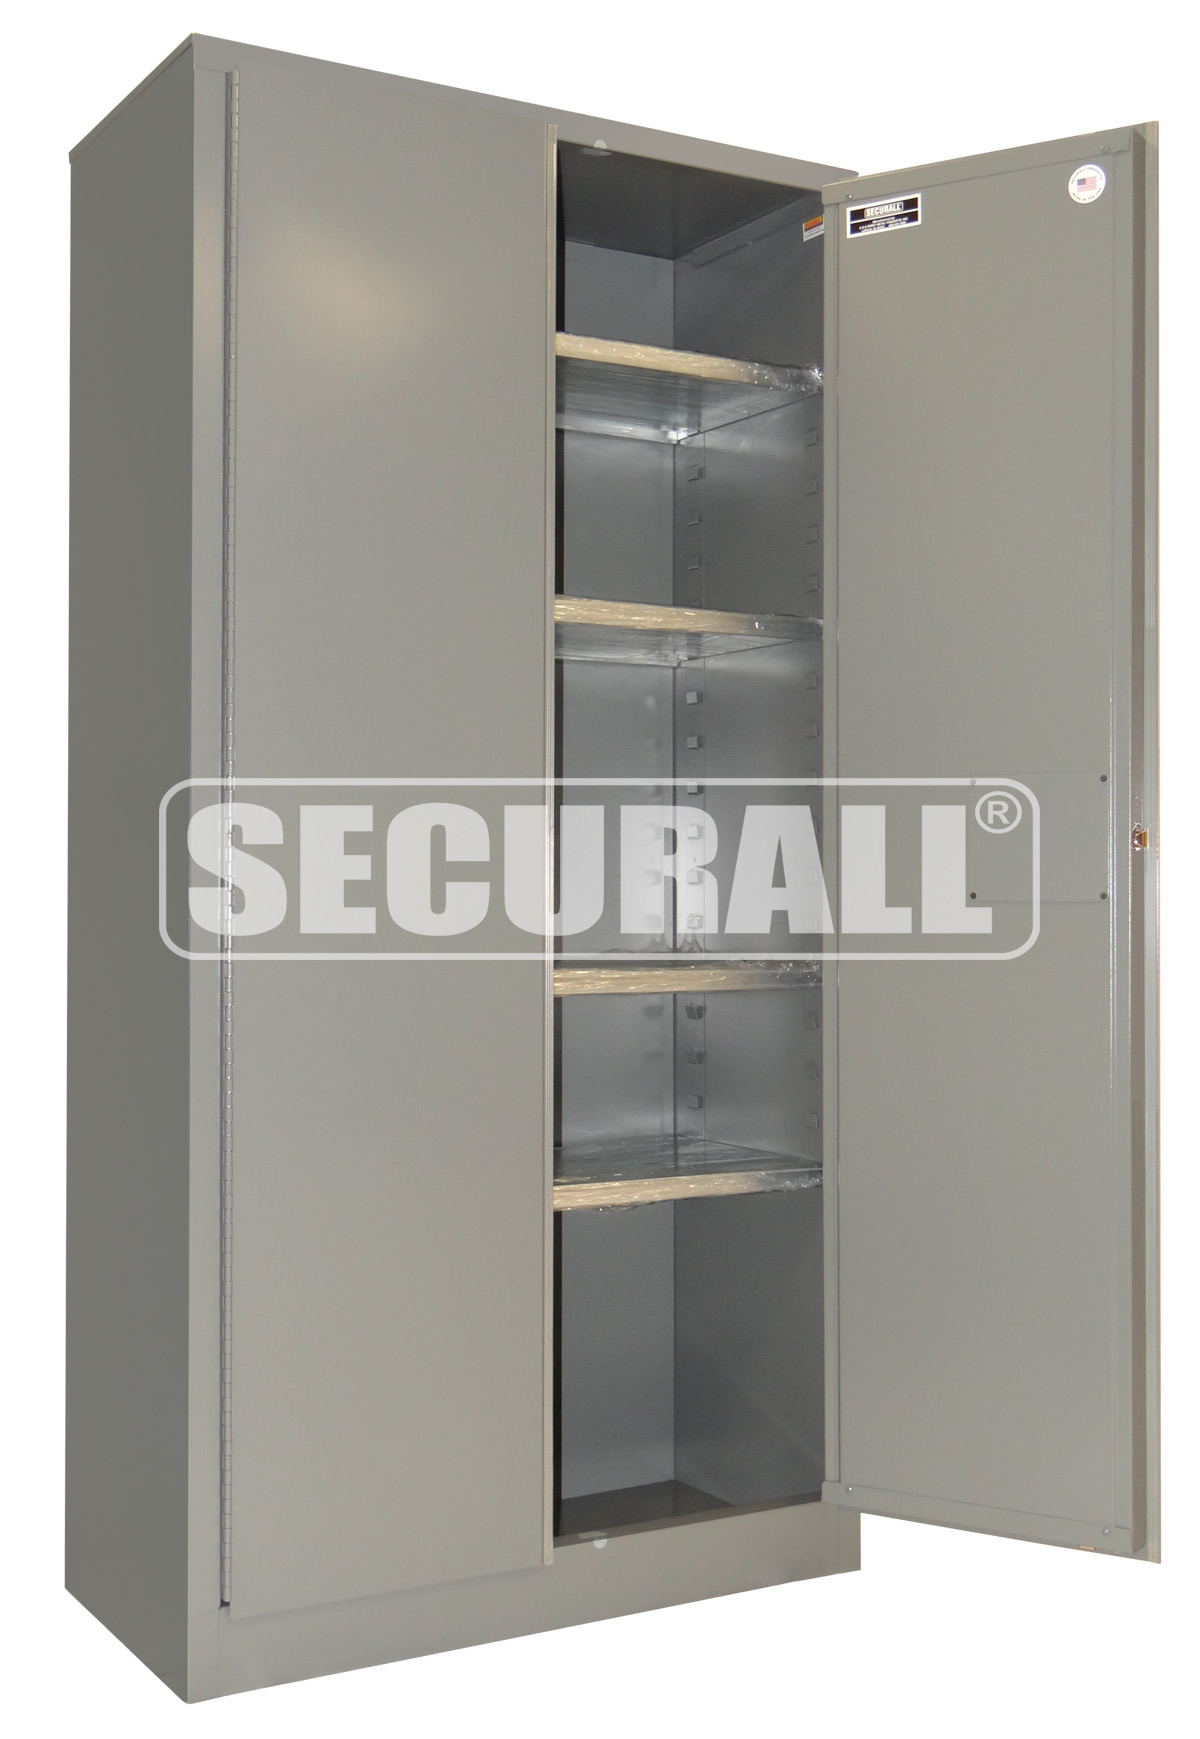 Office Storage Cabinets with Doors Beautiful Securall Industrial Storage Industrial Cabinet